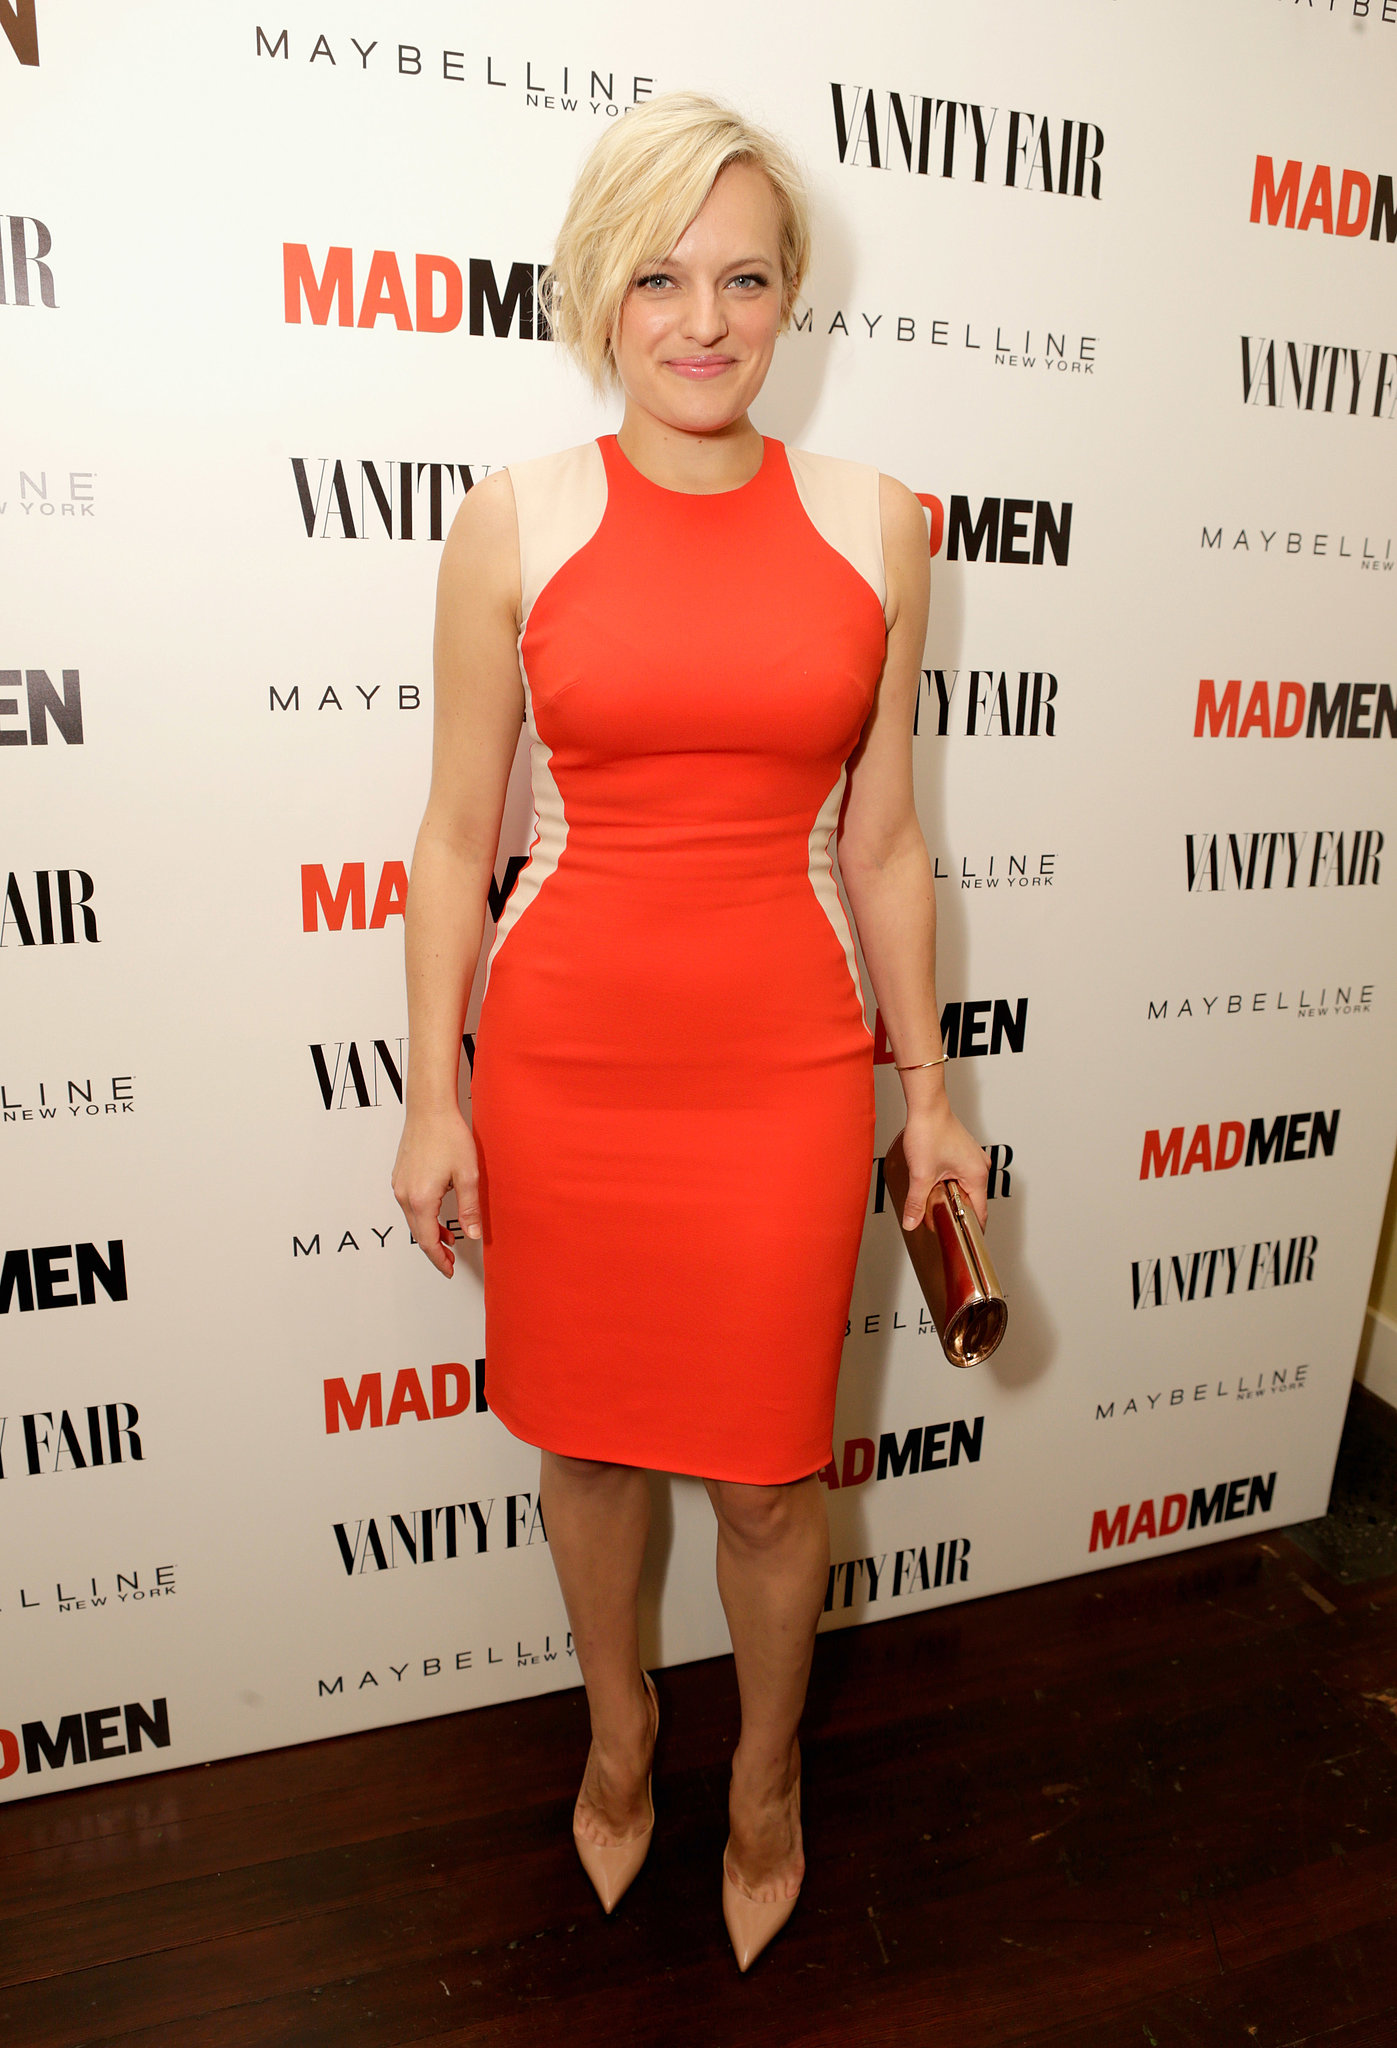 Elisabeth Moss put her curves front and center in a formfitting colorblock dress and pointy pumps at the Vanity Fair and Maybelline pre-Emmys party in honor of Mad Men.